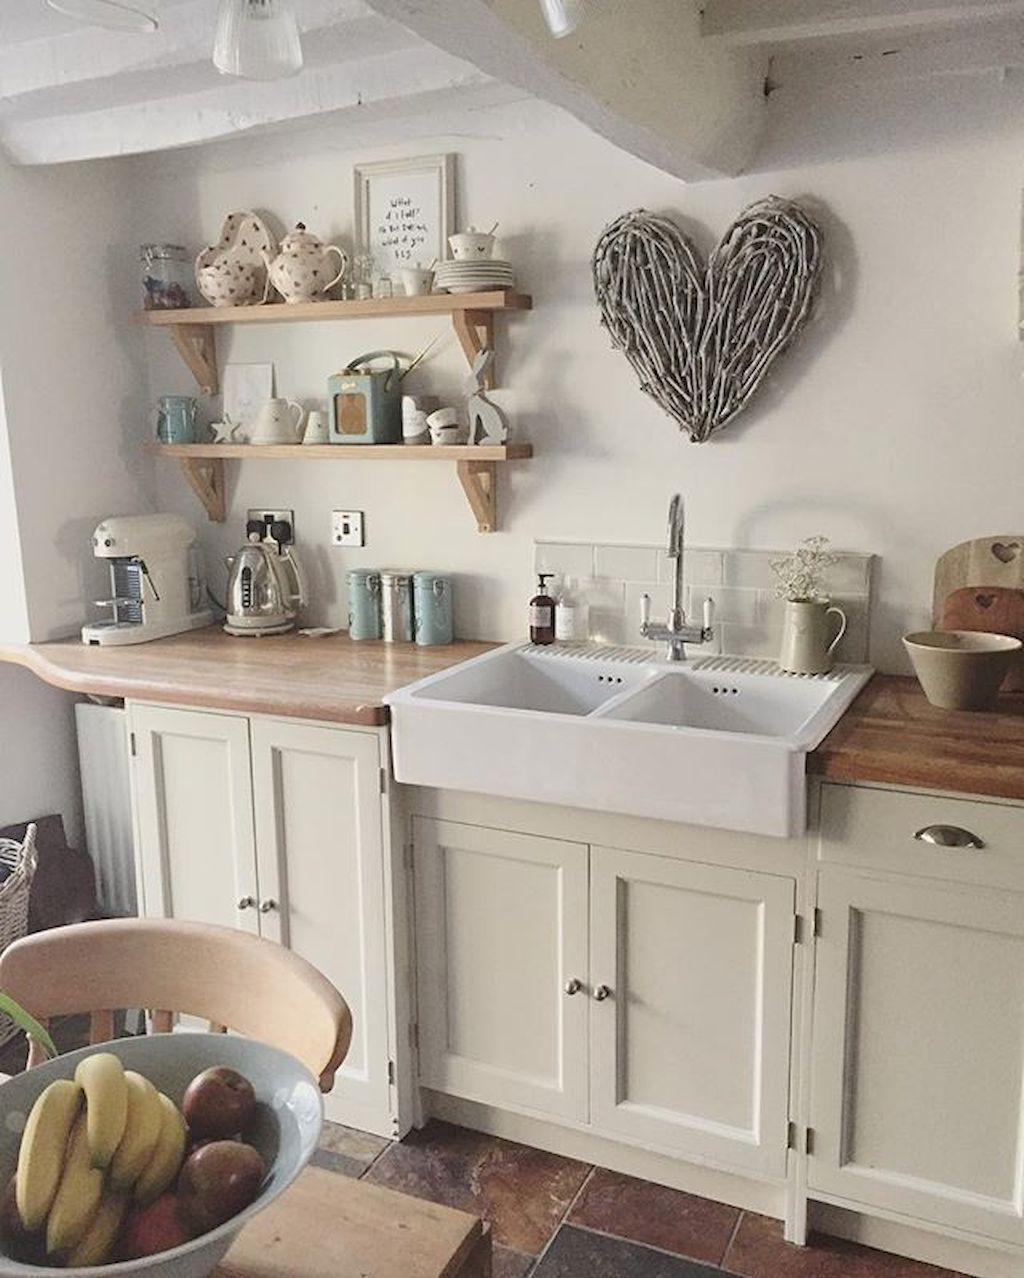 60 Inspiring Rustic Kitchen Decorating Ideas (12